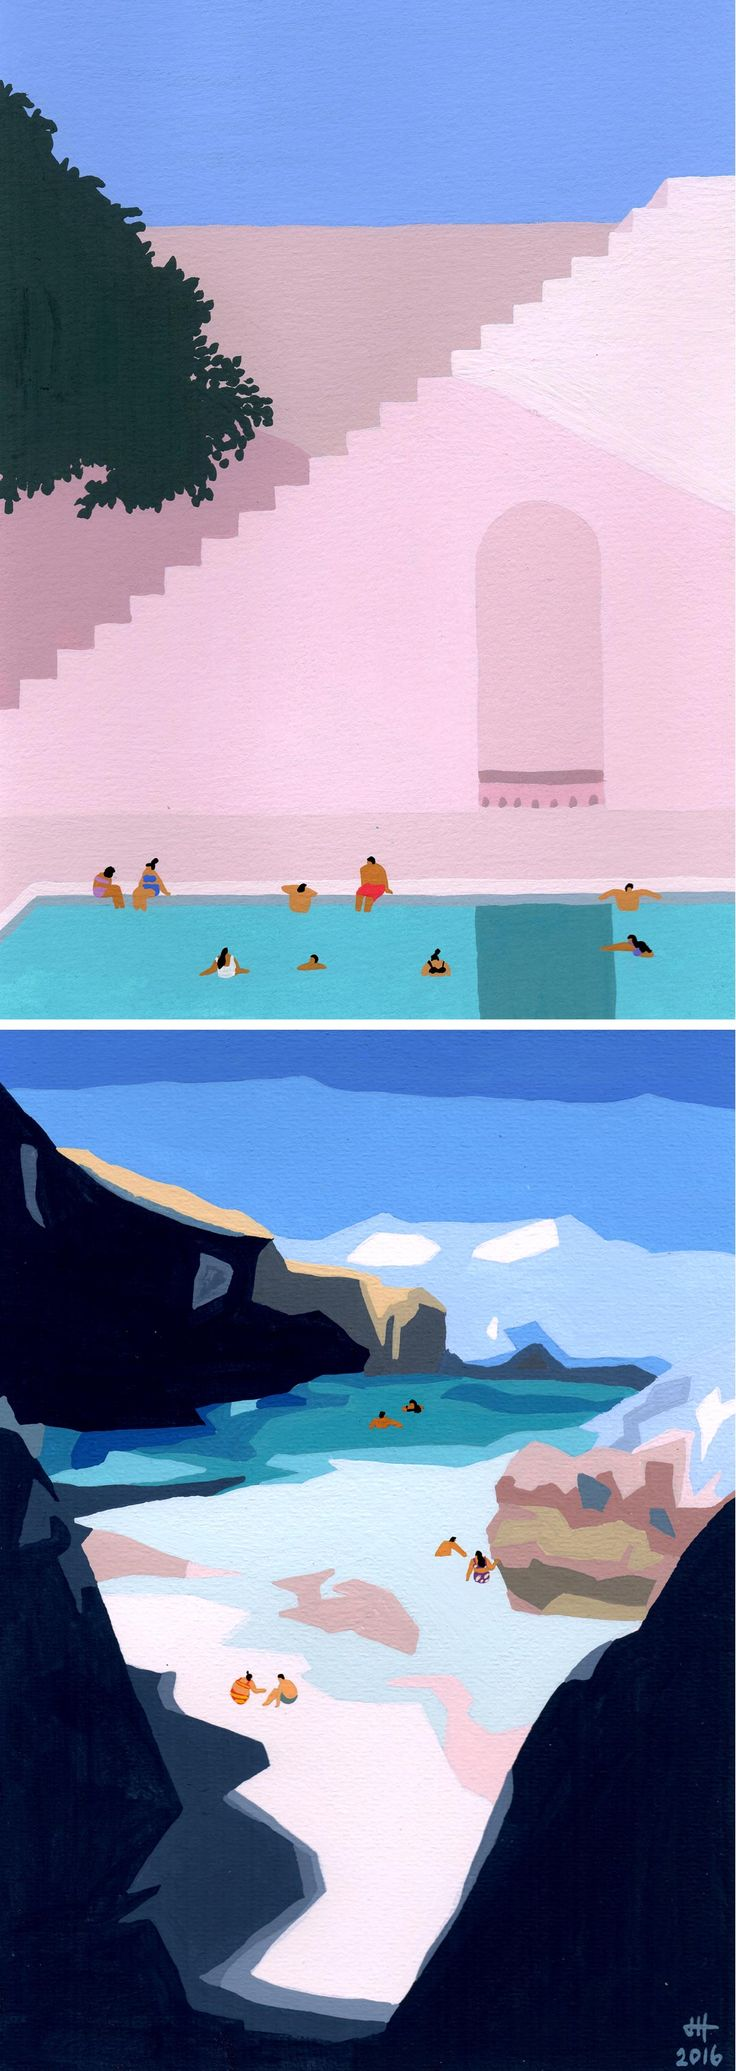 Swimming Paintings by Joanne Ho | gouache painting | summer art | swimming artwork